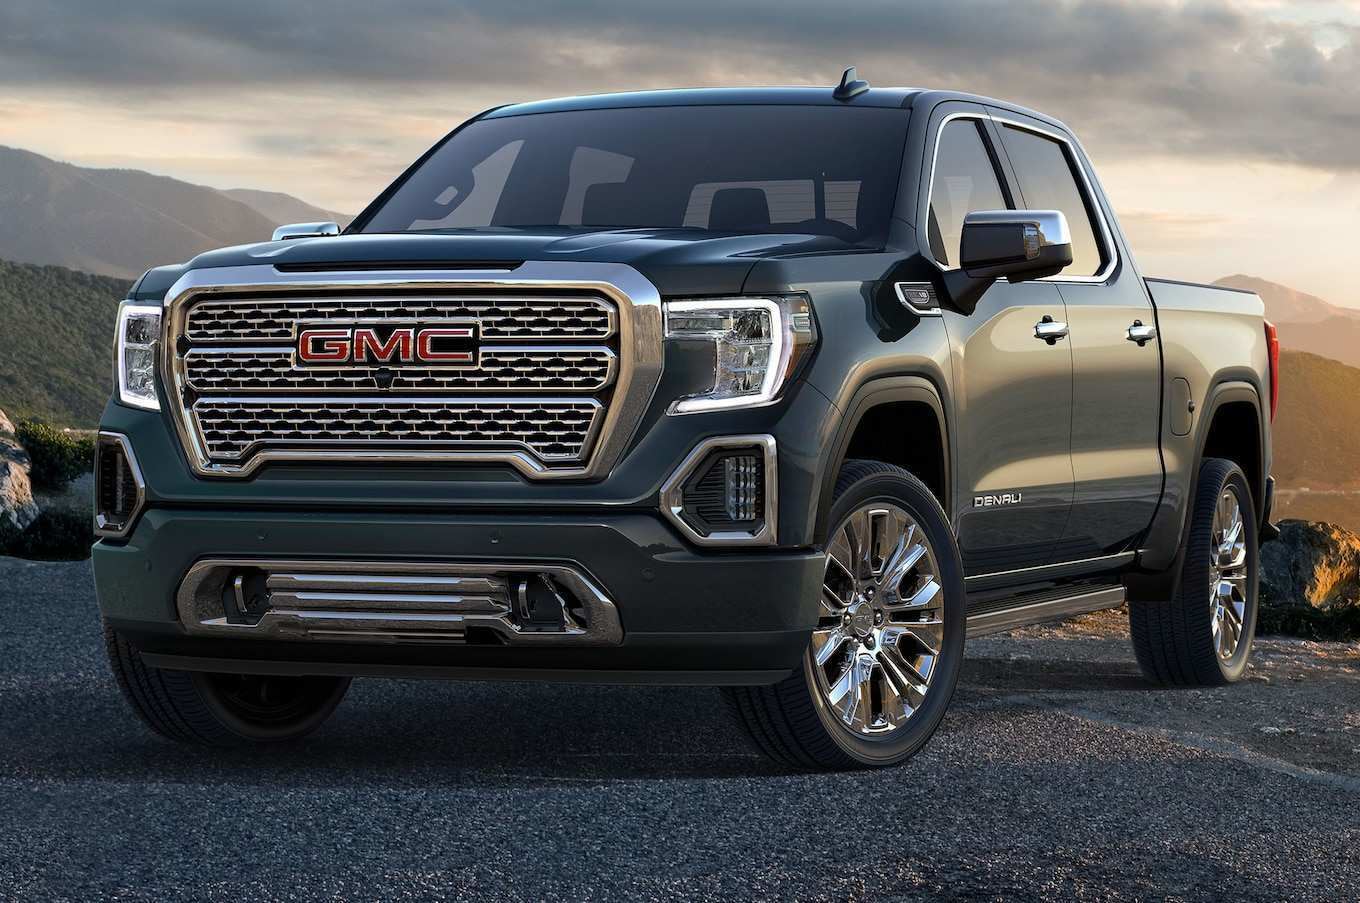 77 New 2019 Gmc Sierra Denali 1500 Hd Exterior